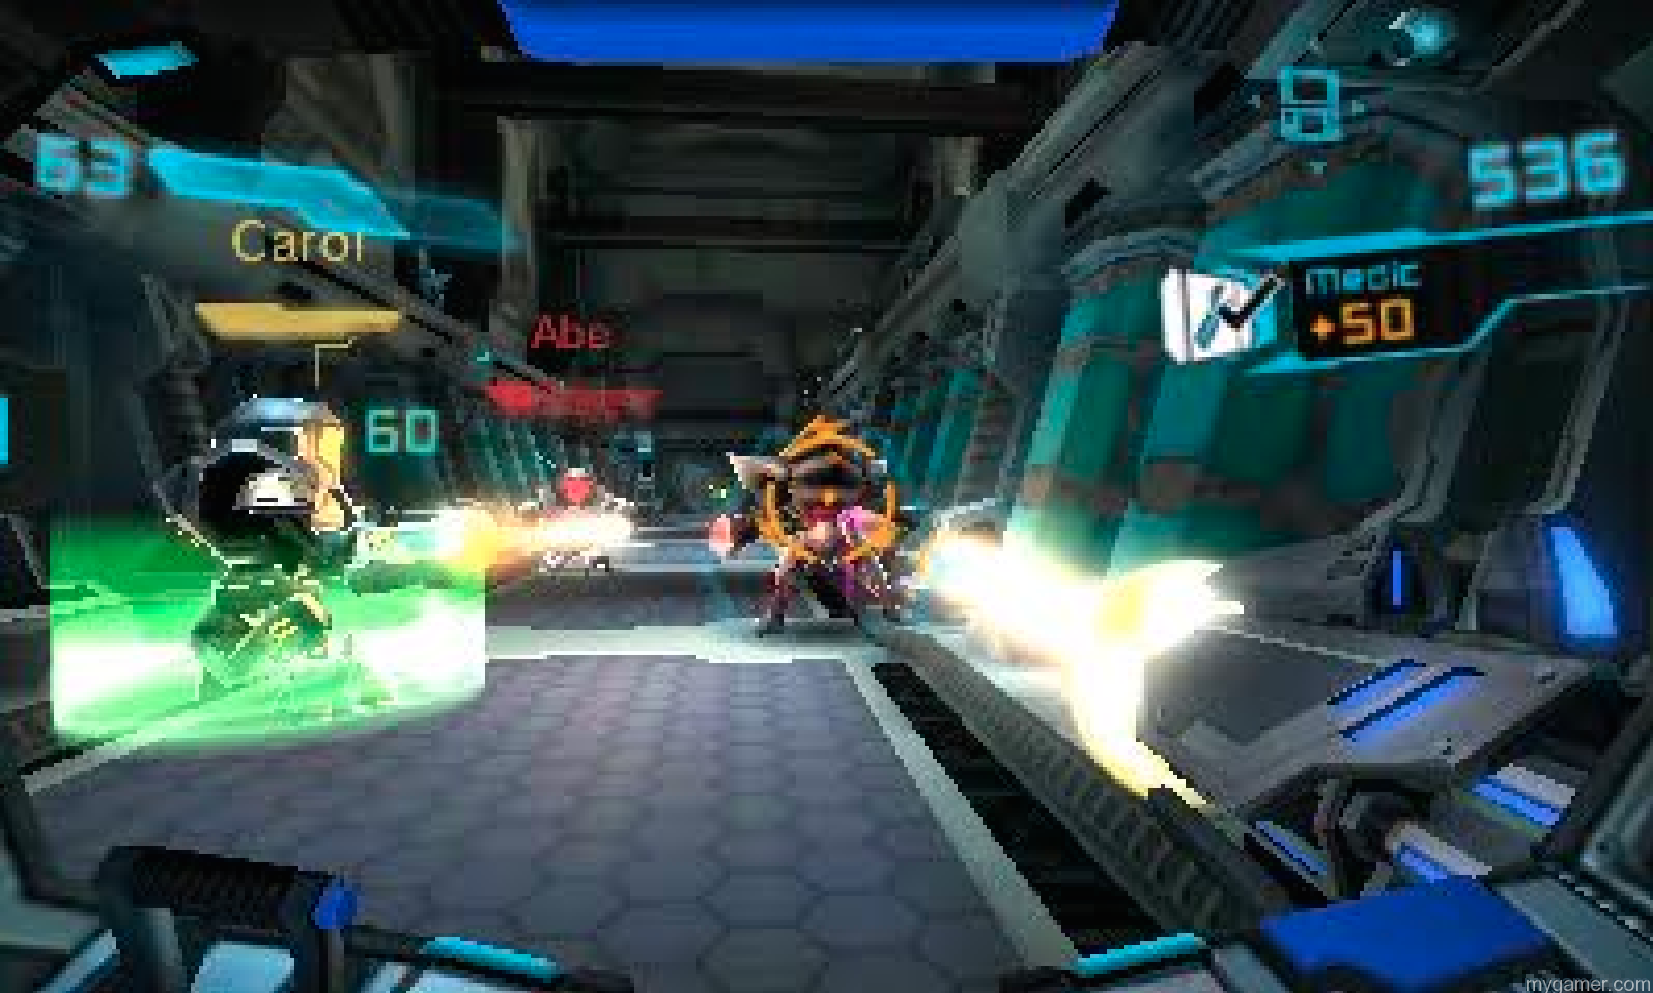 The 2nd analog nub on NEW 3DS units can work but tilting the system to aim works much better. Metroid Prime Federation Force 3DS Review Metroid Prime Federation Force 3DS Review Metroid Fed Force shooting